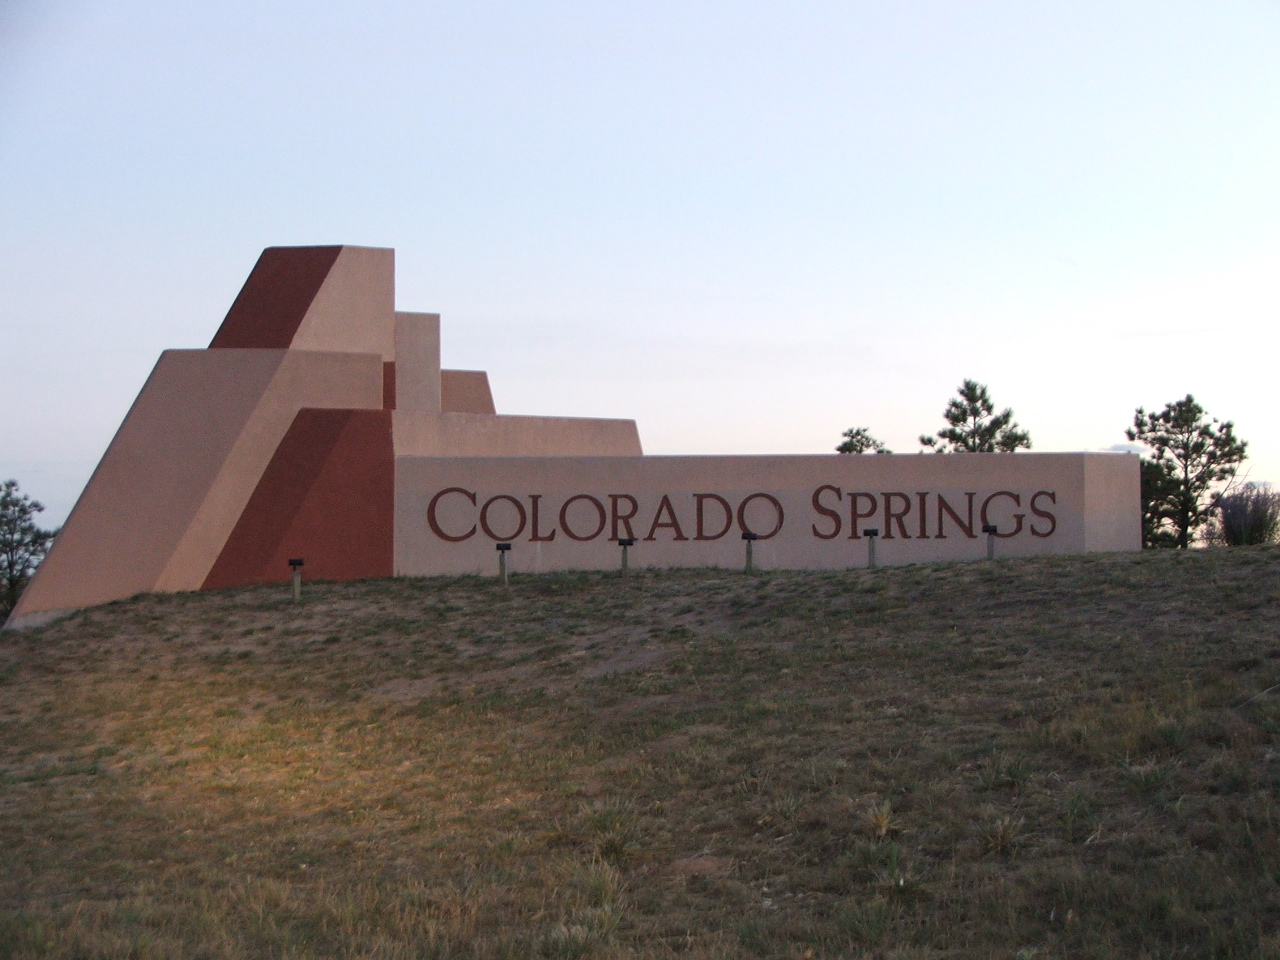 The Colorado Springs welcome sign just south of the N Gate Blvd exit on I-25 in Colorado Springs.